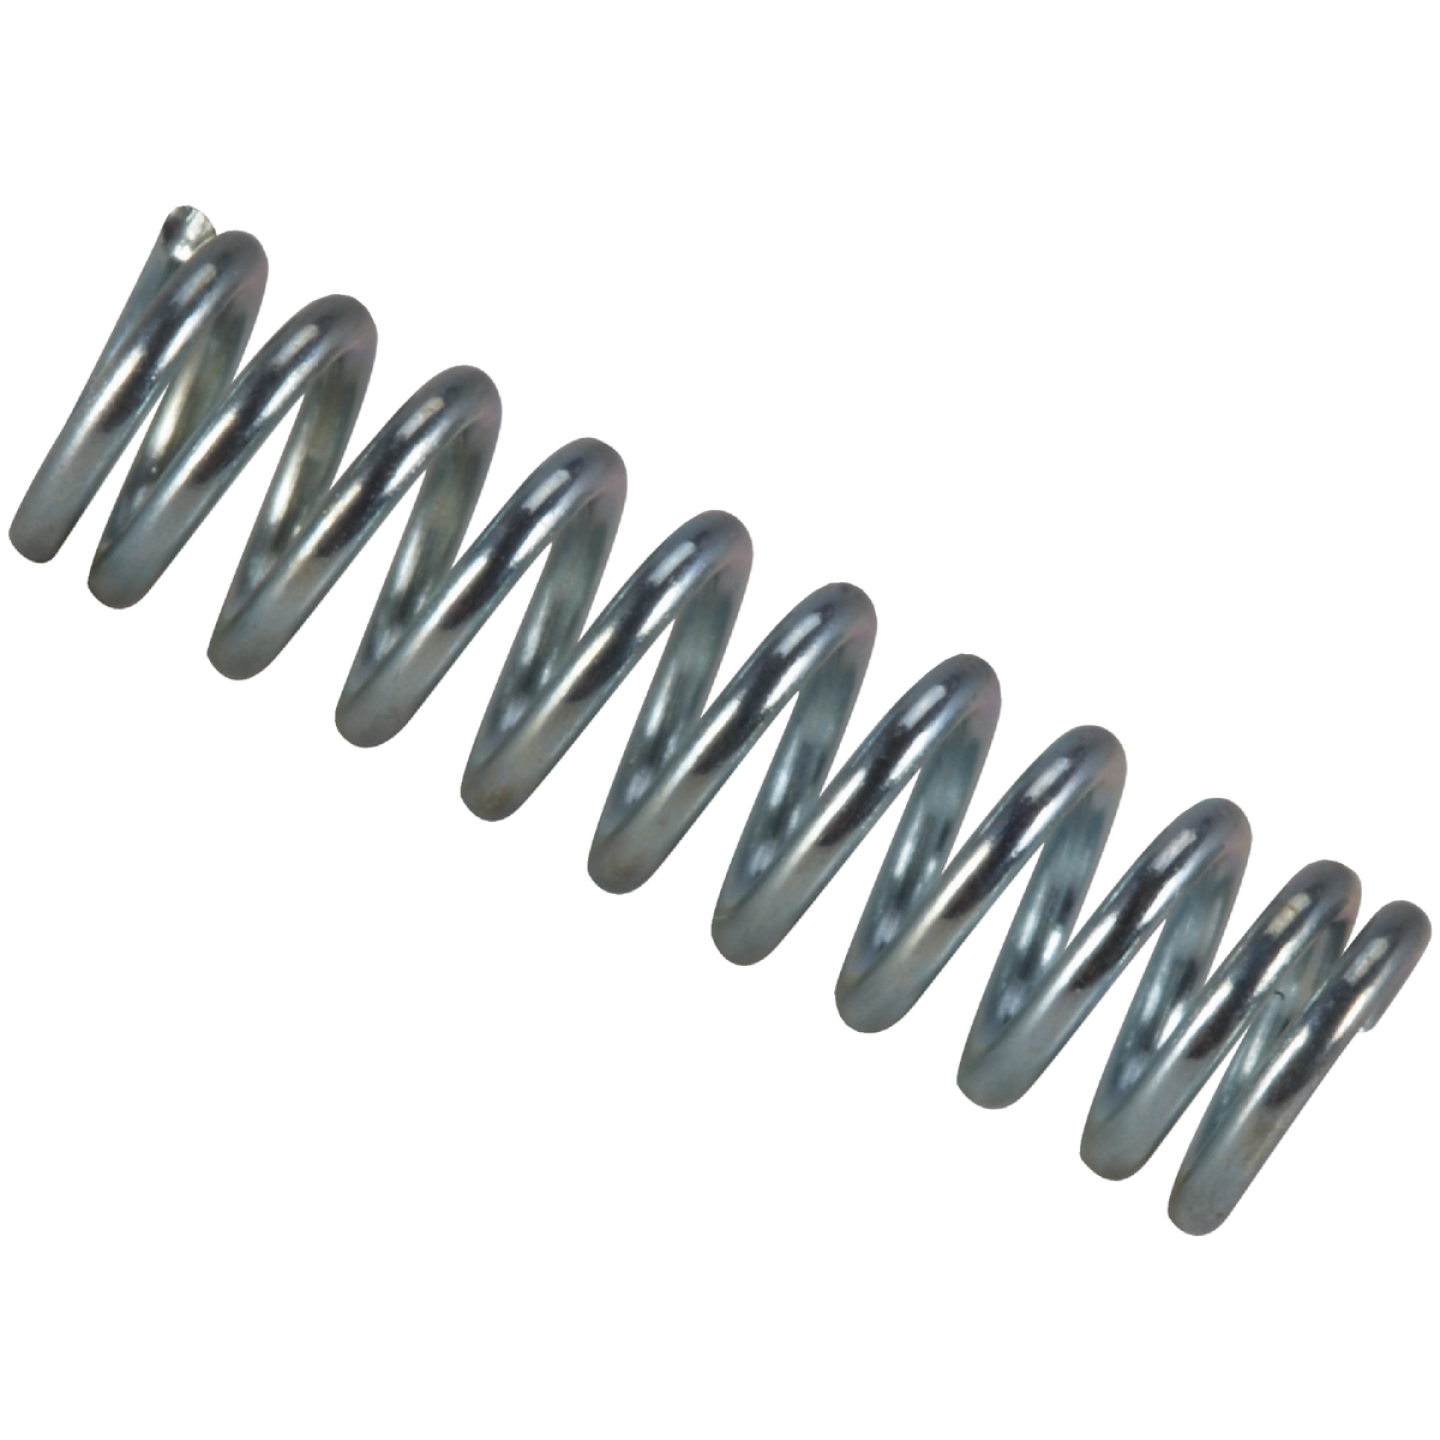 Century Spring 3-1/2 In. x 3/4 In. Compression Spring (2 Count) Image 1